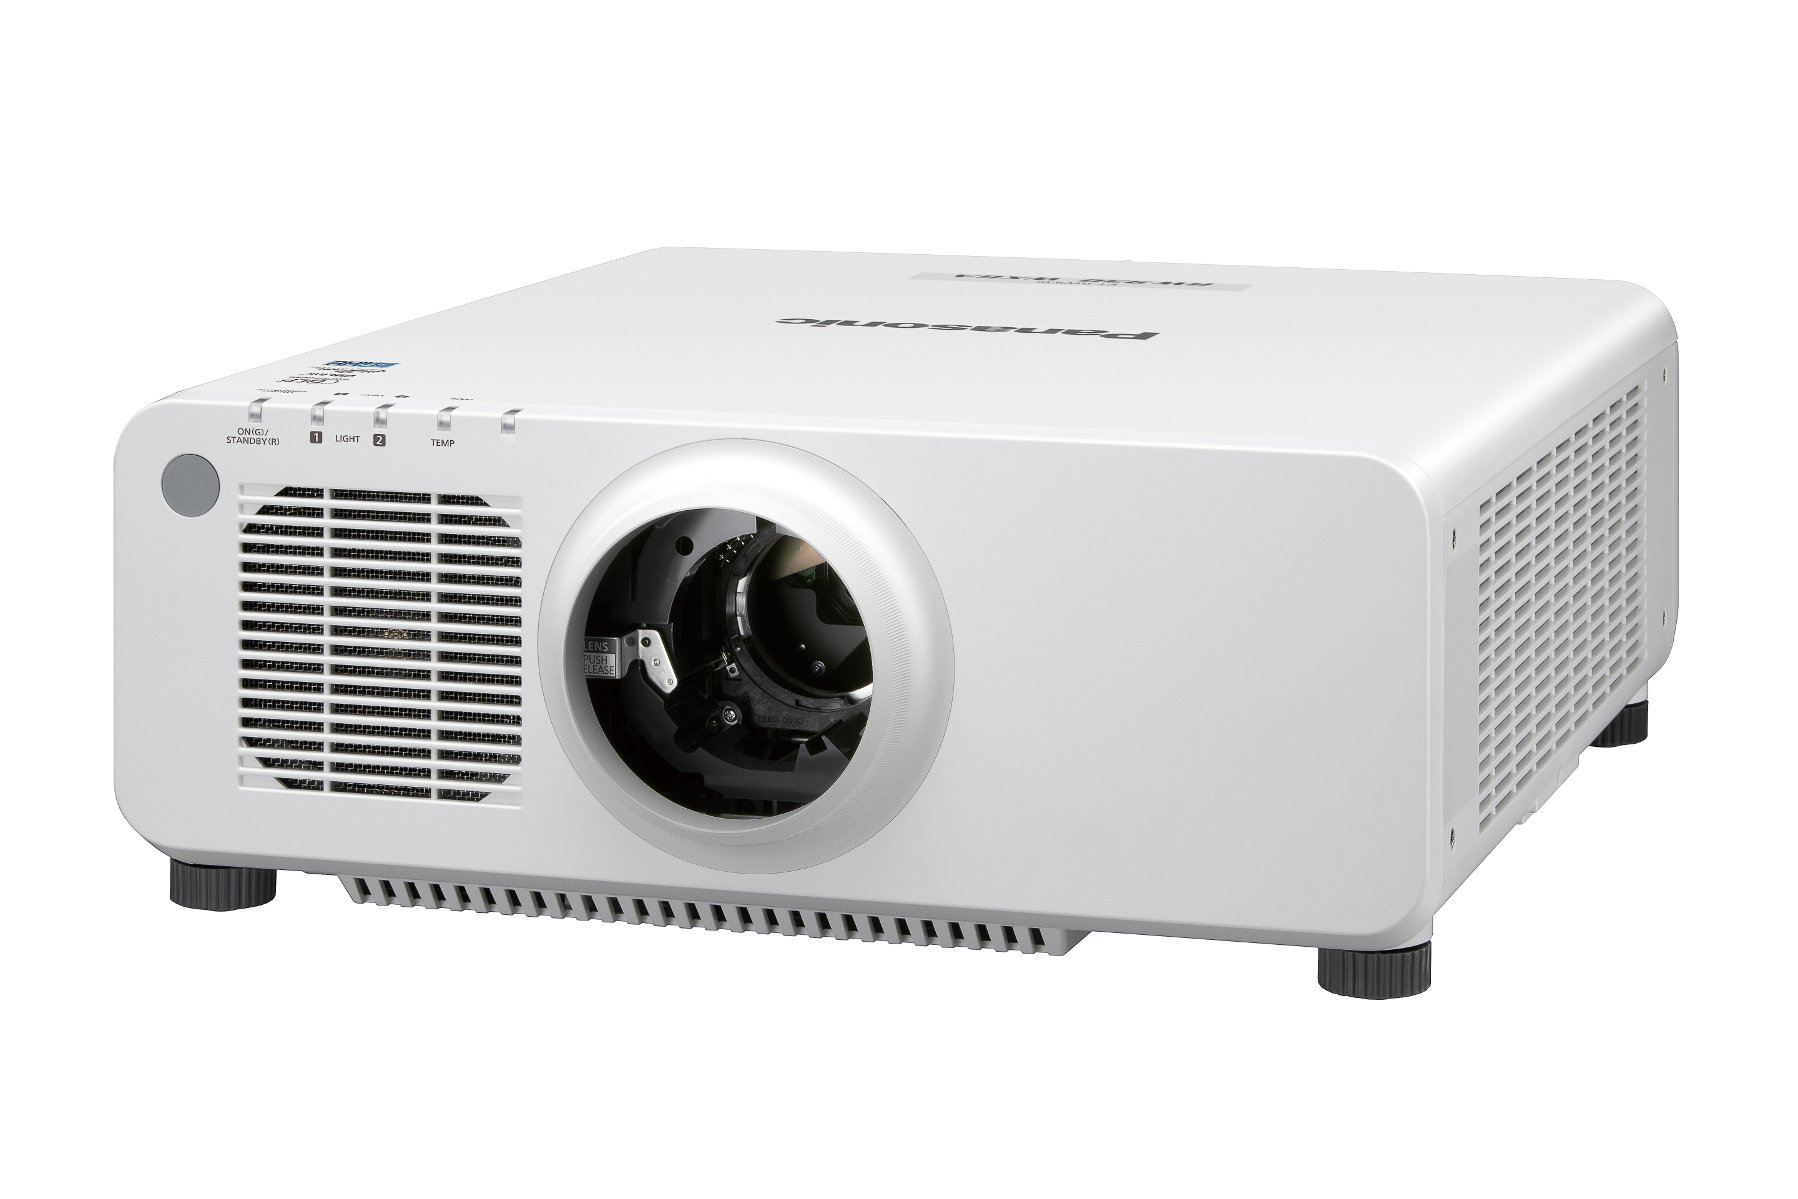 10,000 Lumens WXGA DLP Laser Projector Body Only in White